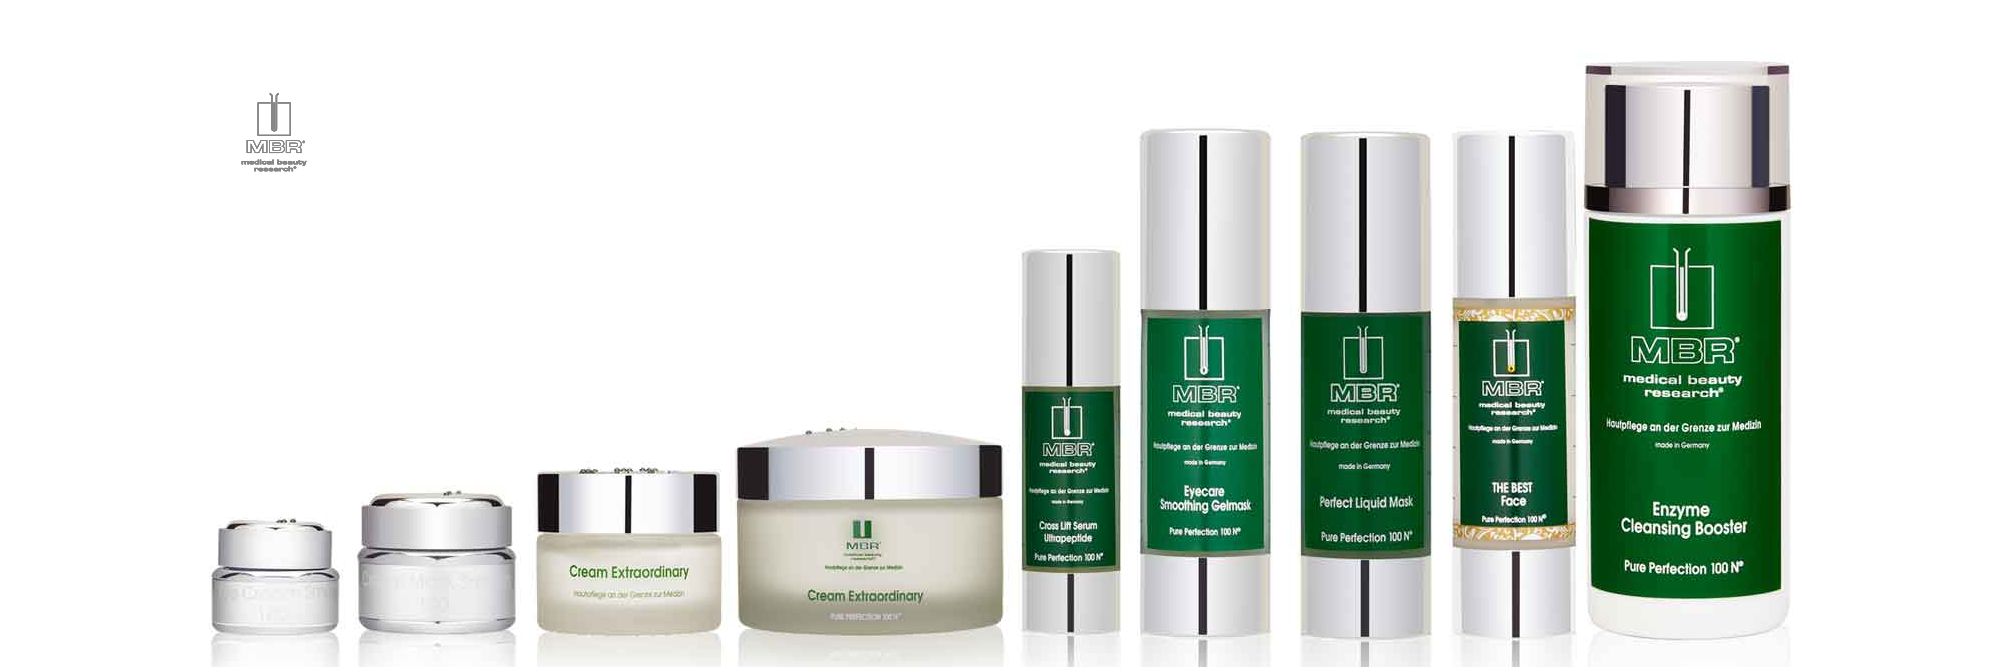 MBR - Medical Beauty Research Online Shop